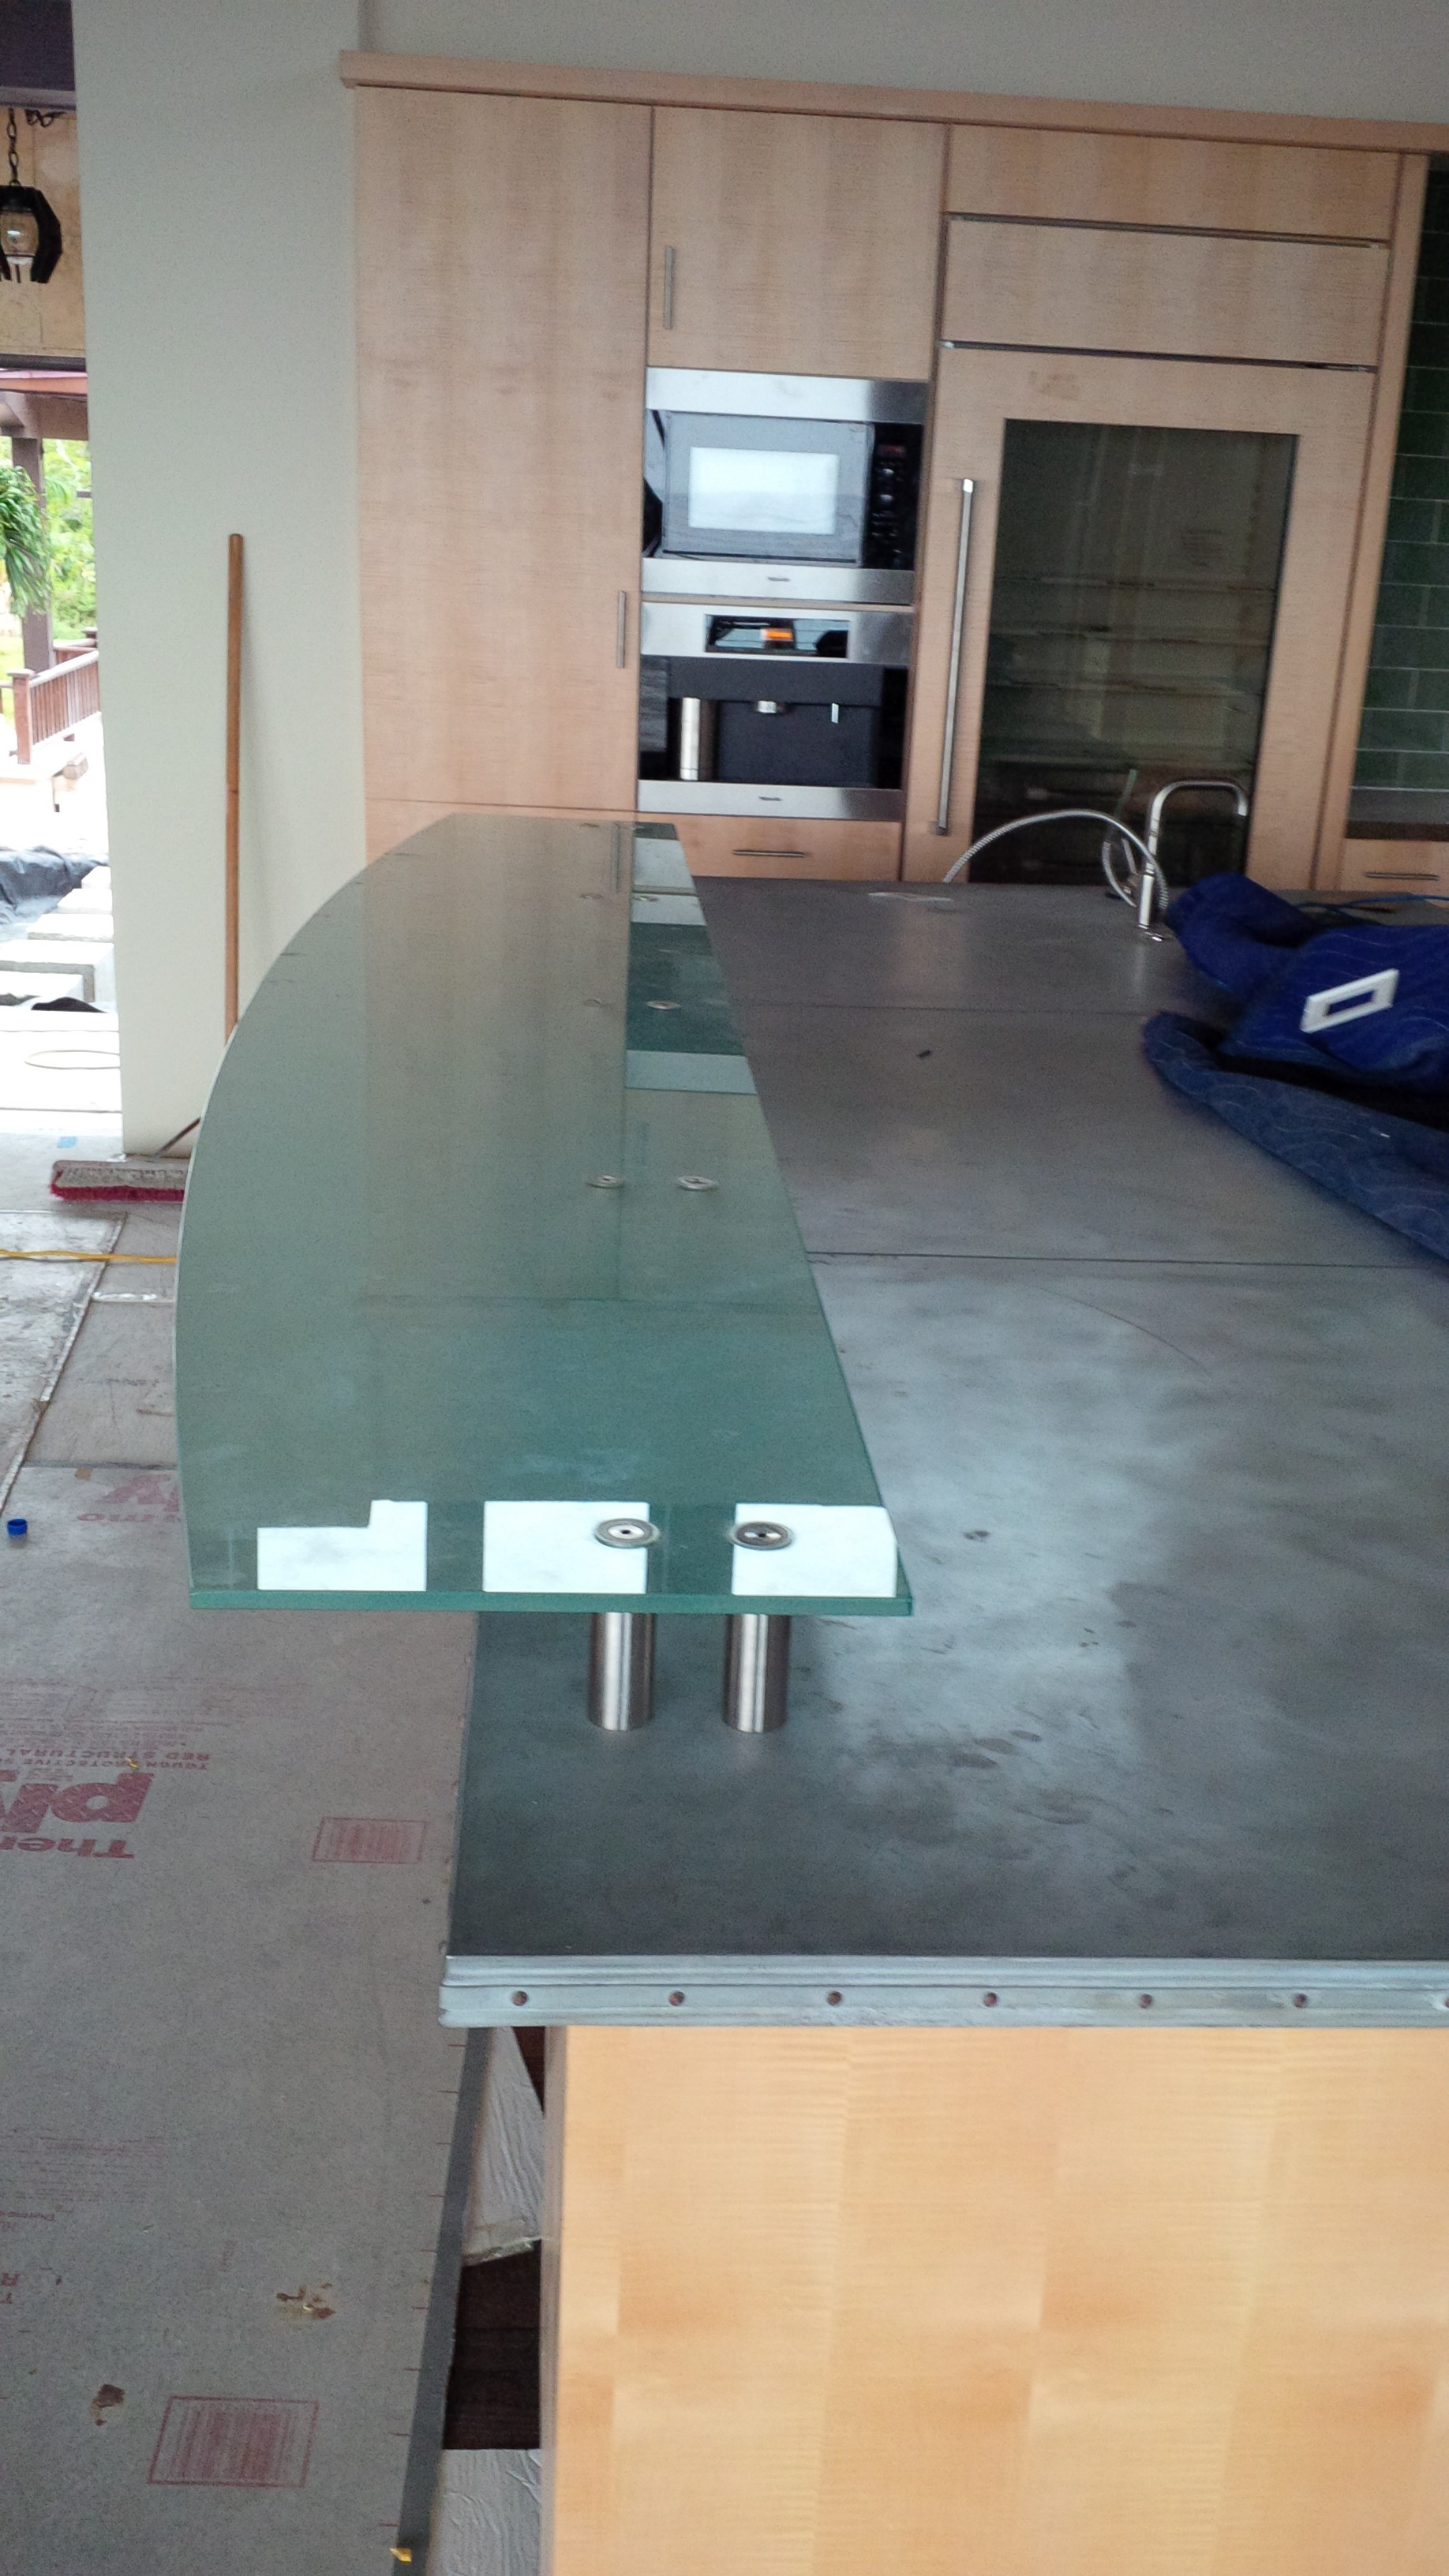 Frosted glass counter top on standof